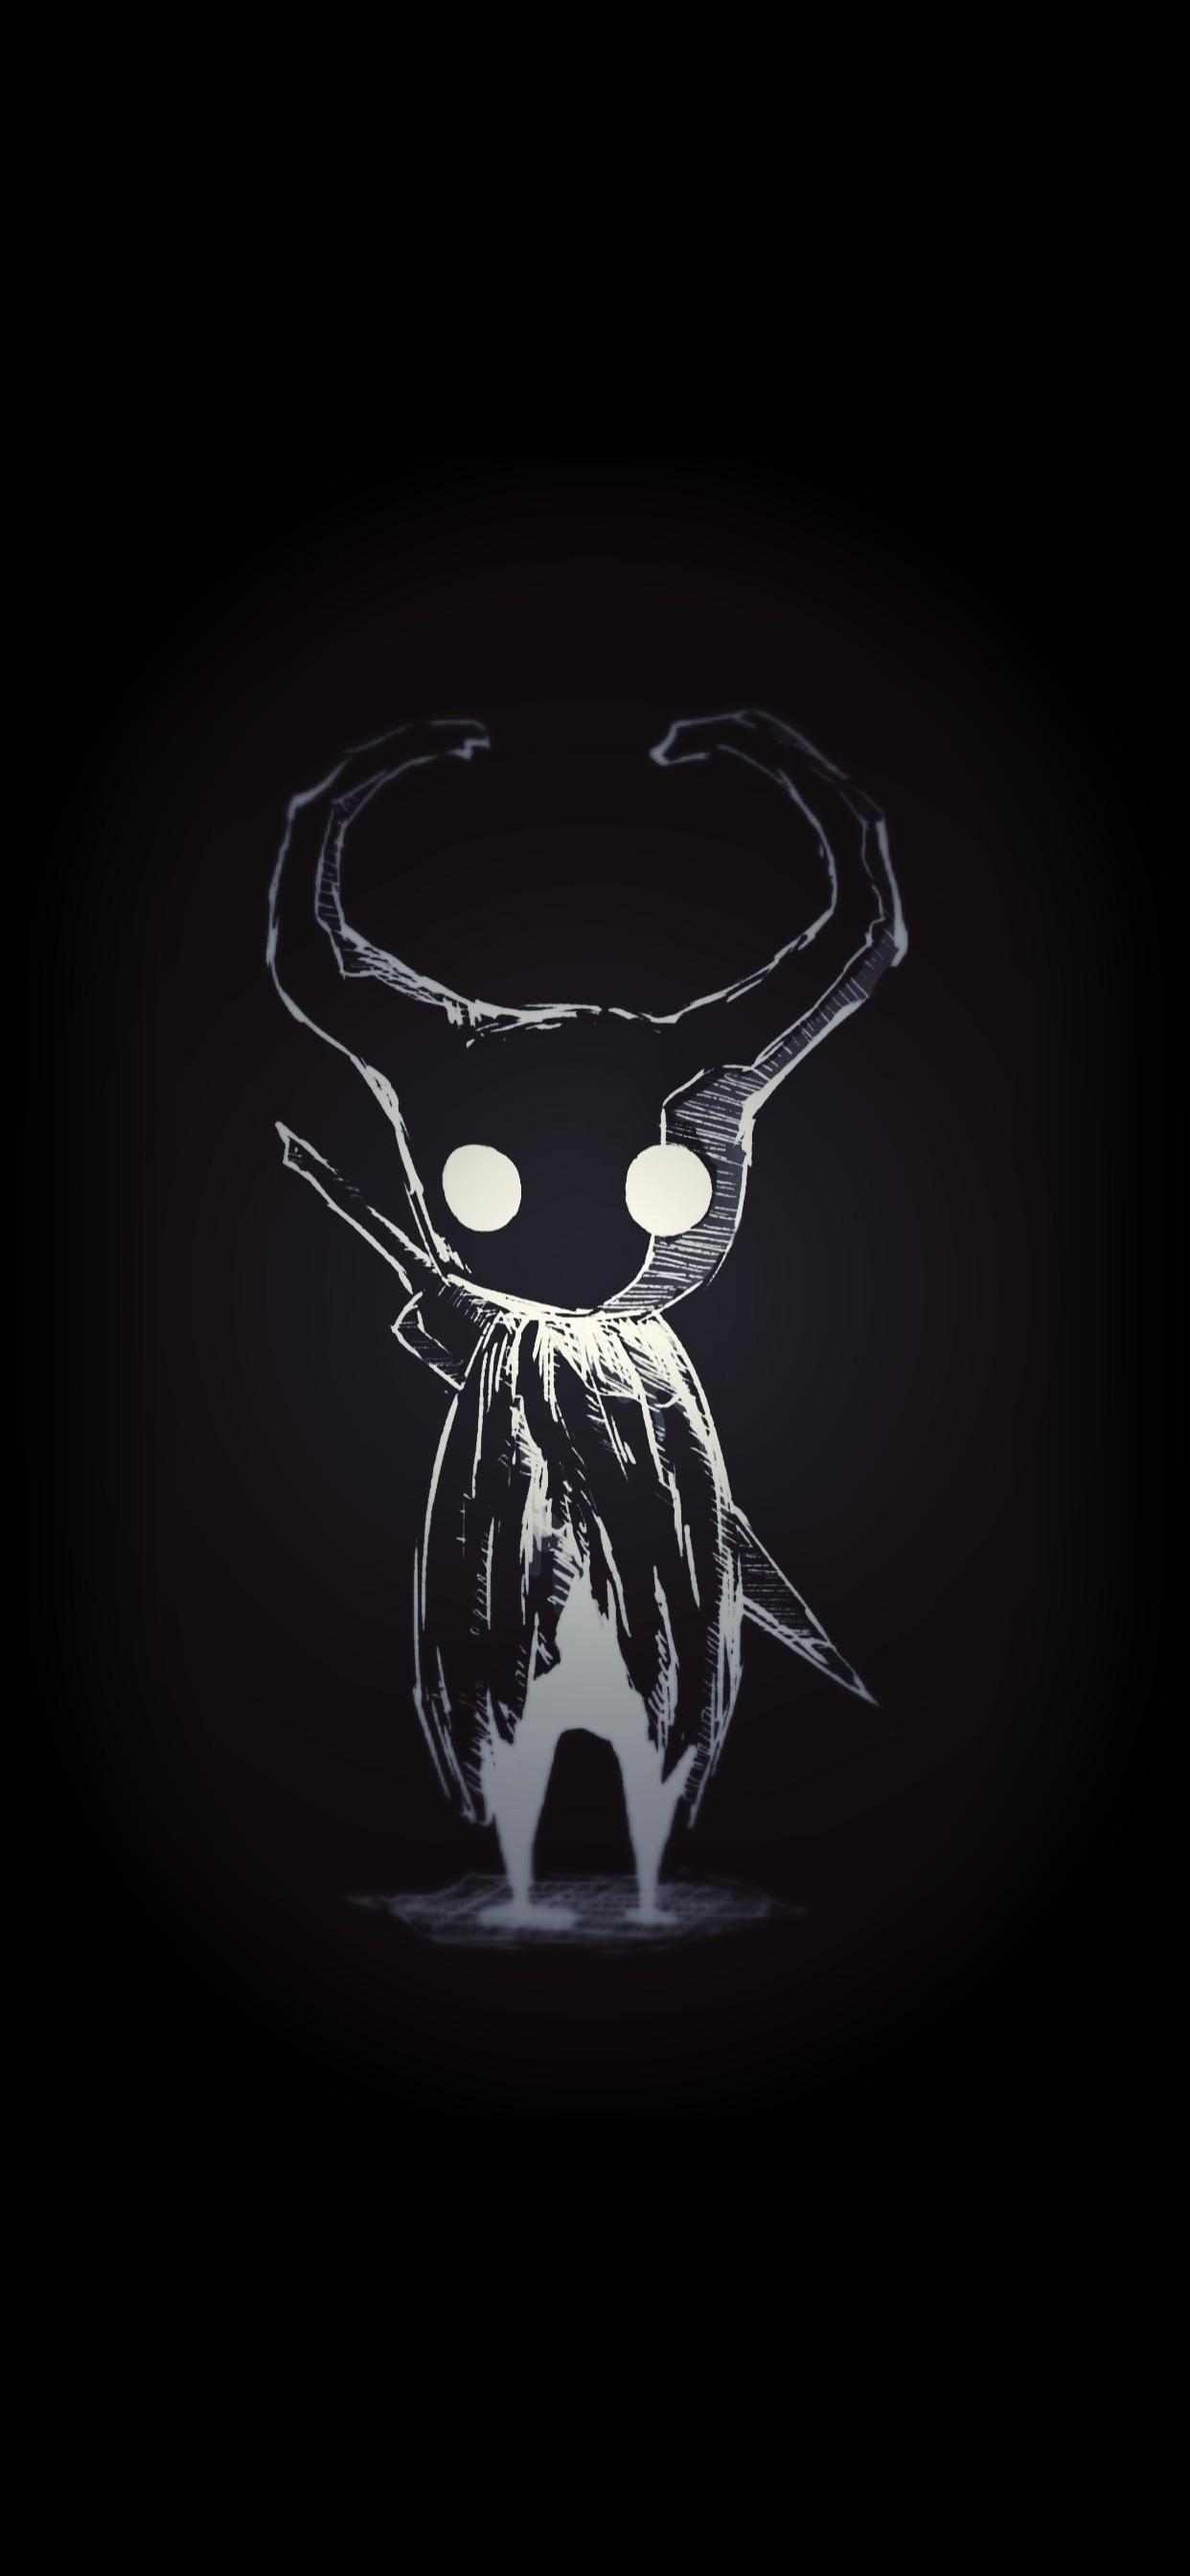 Minimal Hollow Knight Phone Wallpapers - Wallpaper Cave